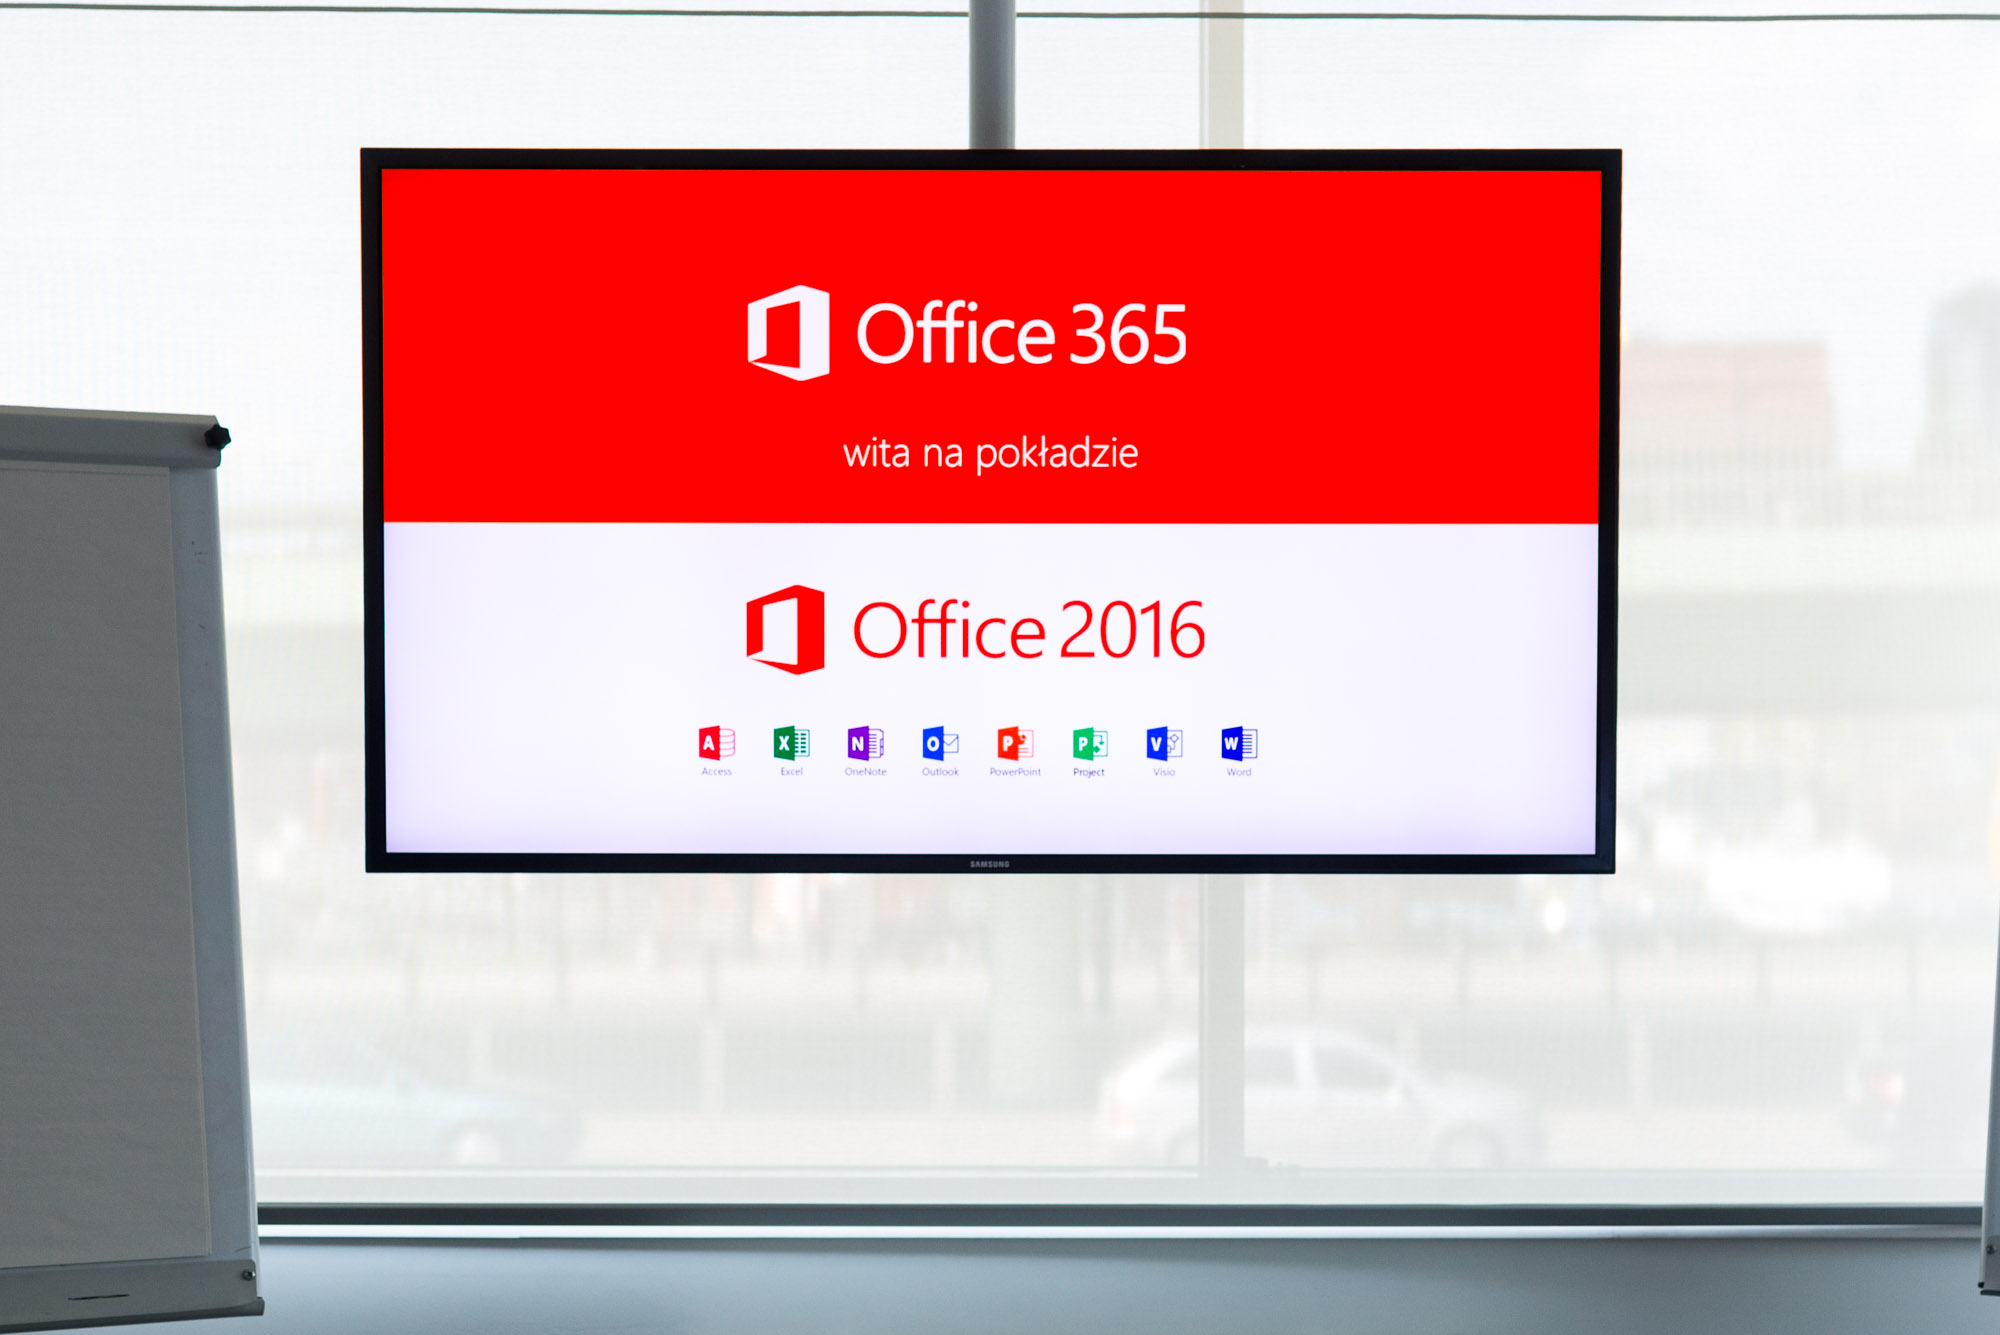 Co potrafi Office 365?